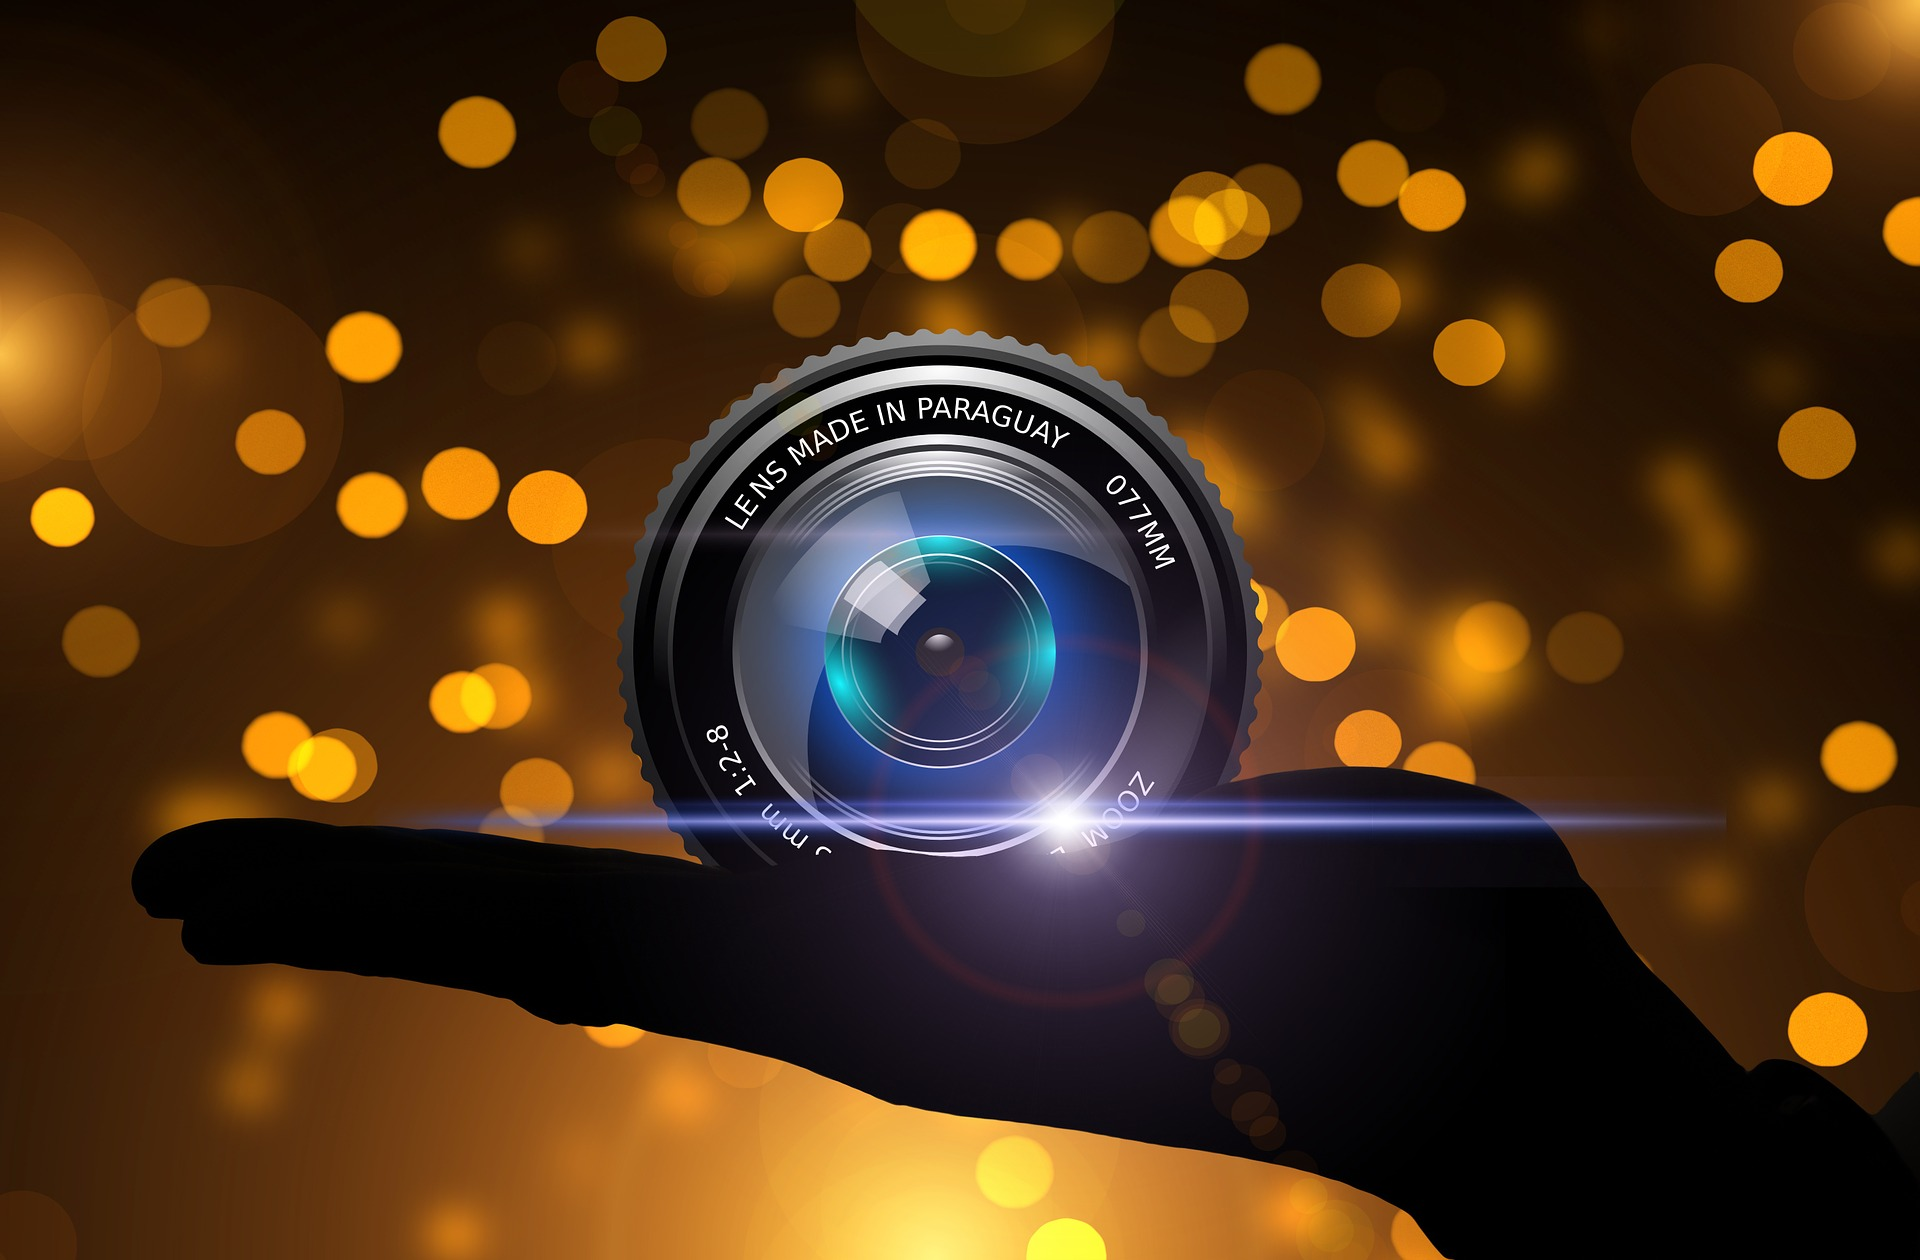 Creating stunning photography that sells homes -